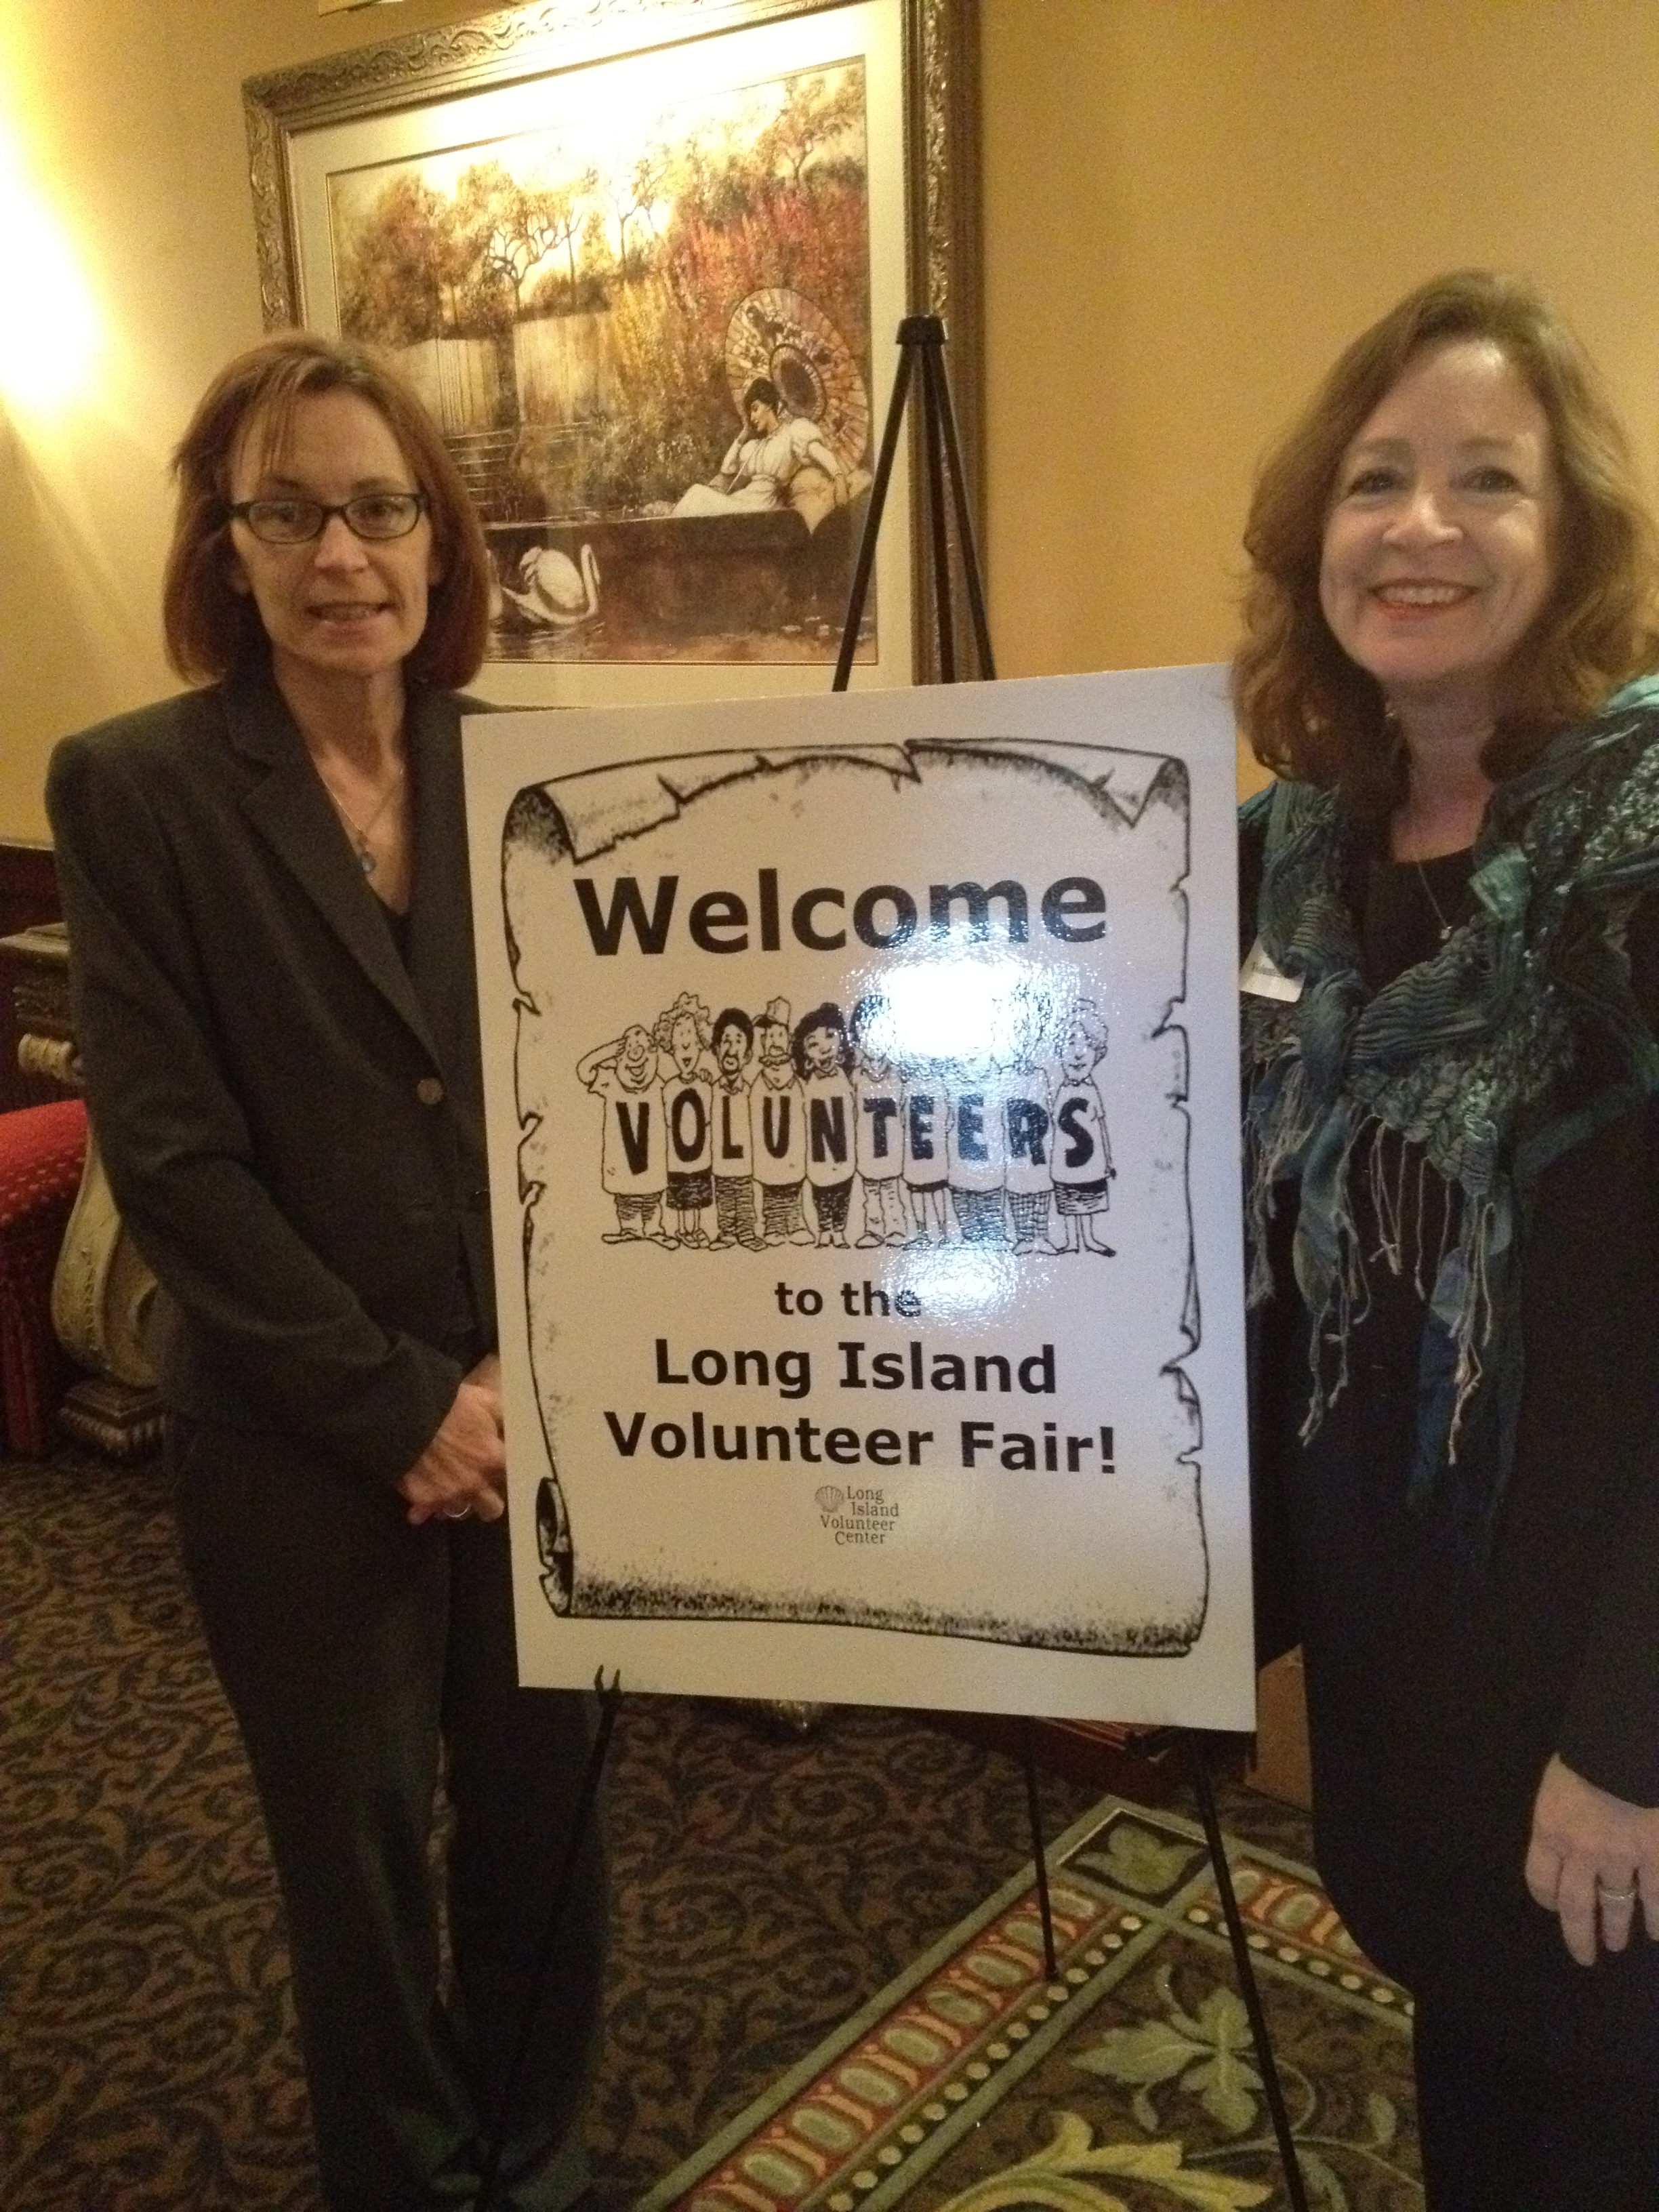 The Long Island Volunteer Center